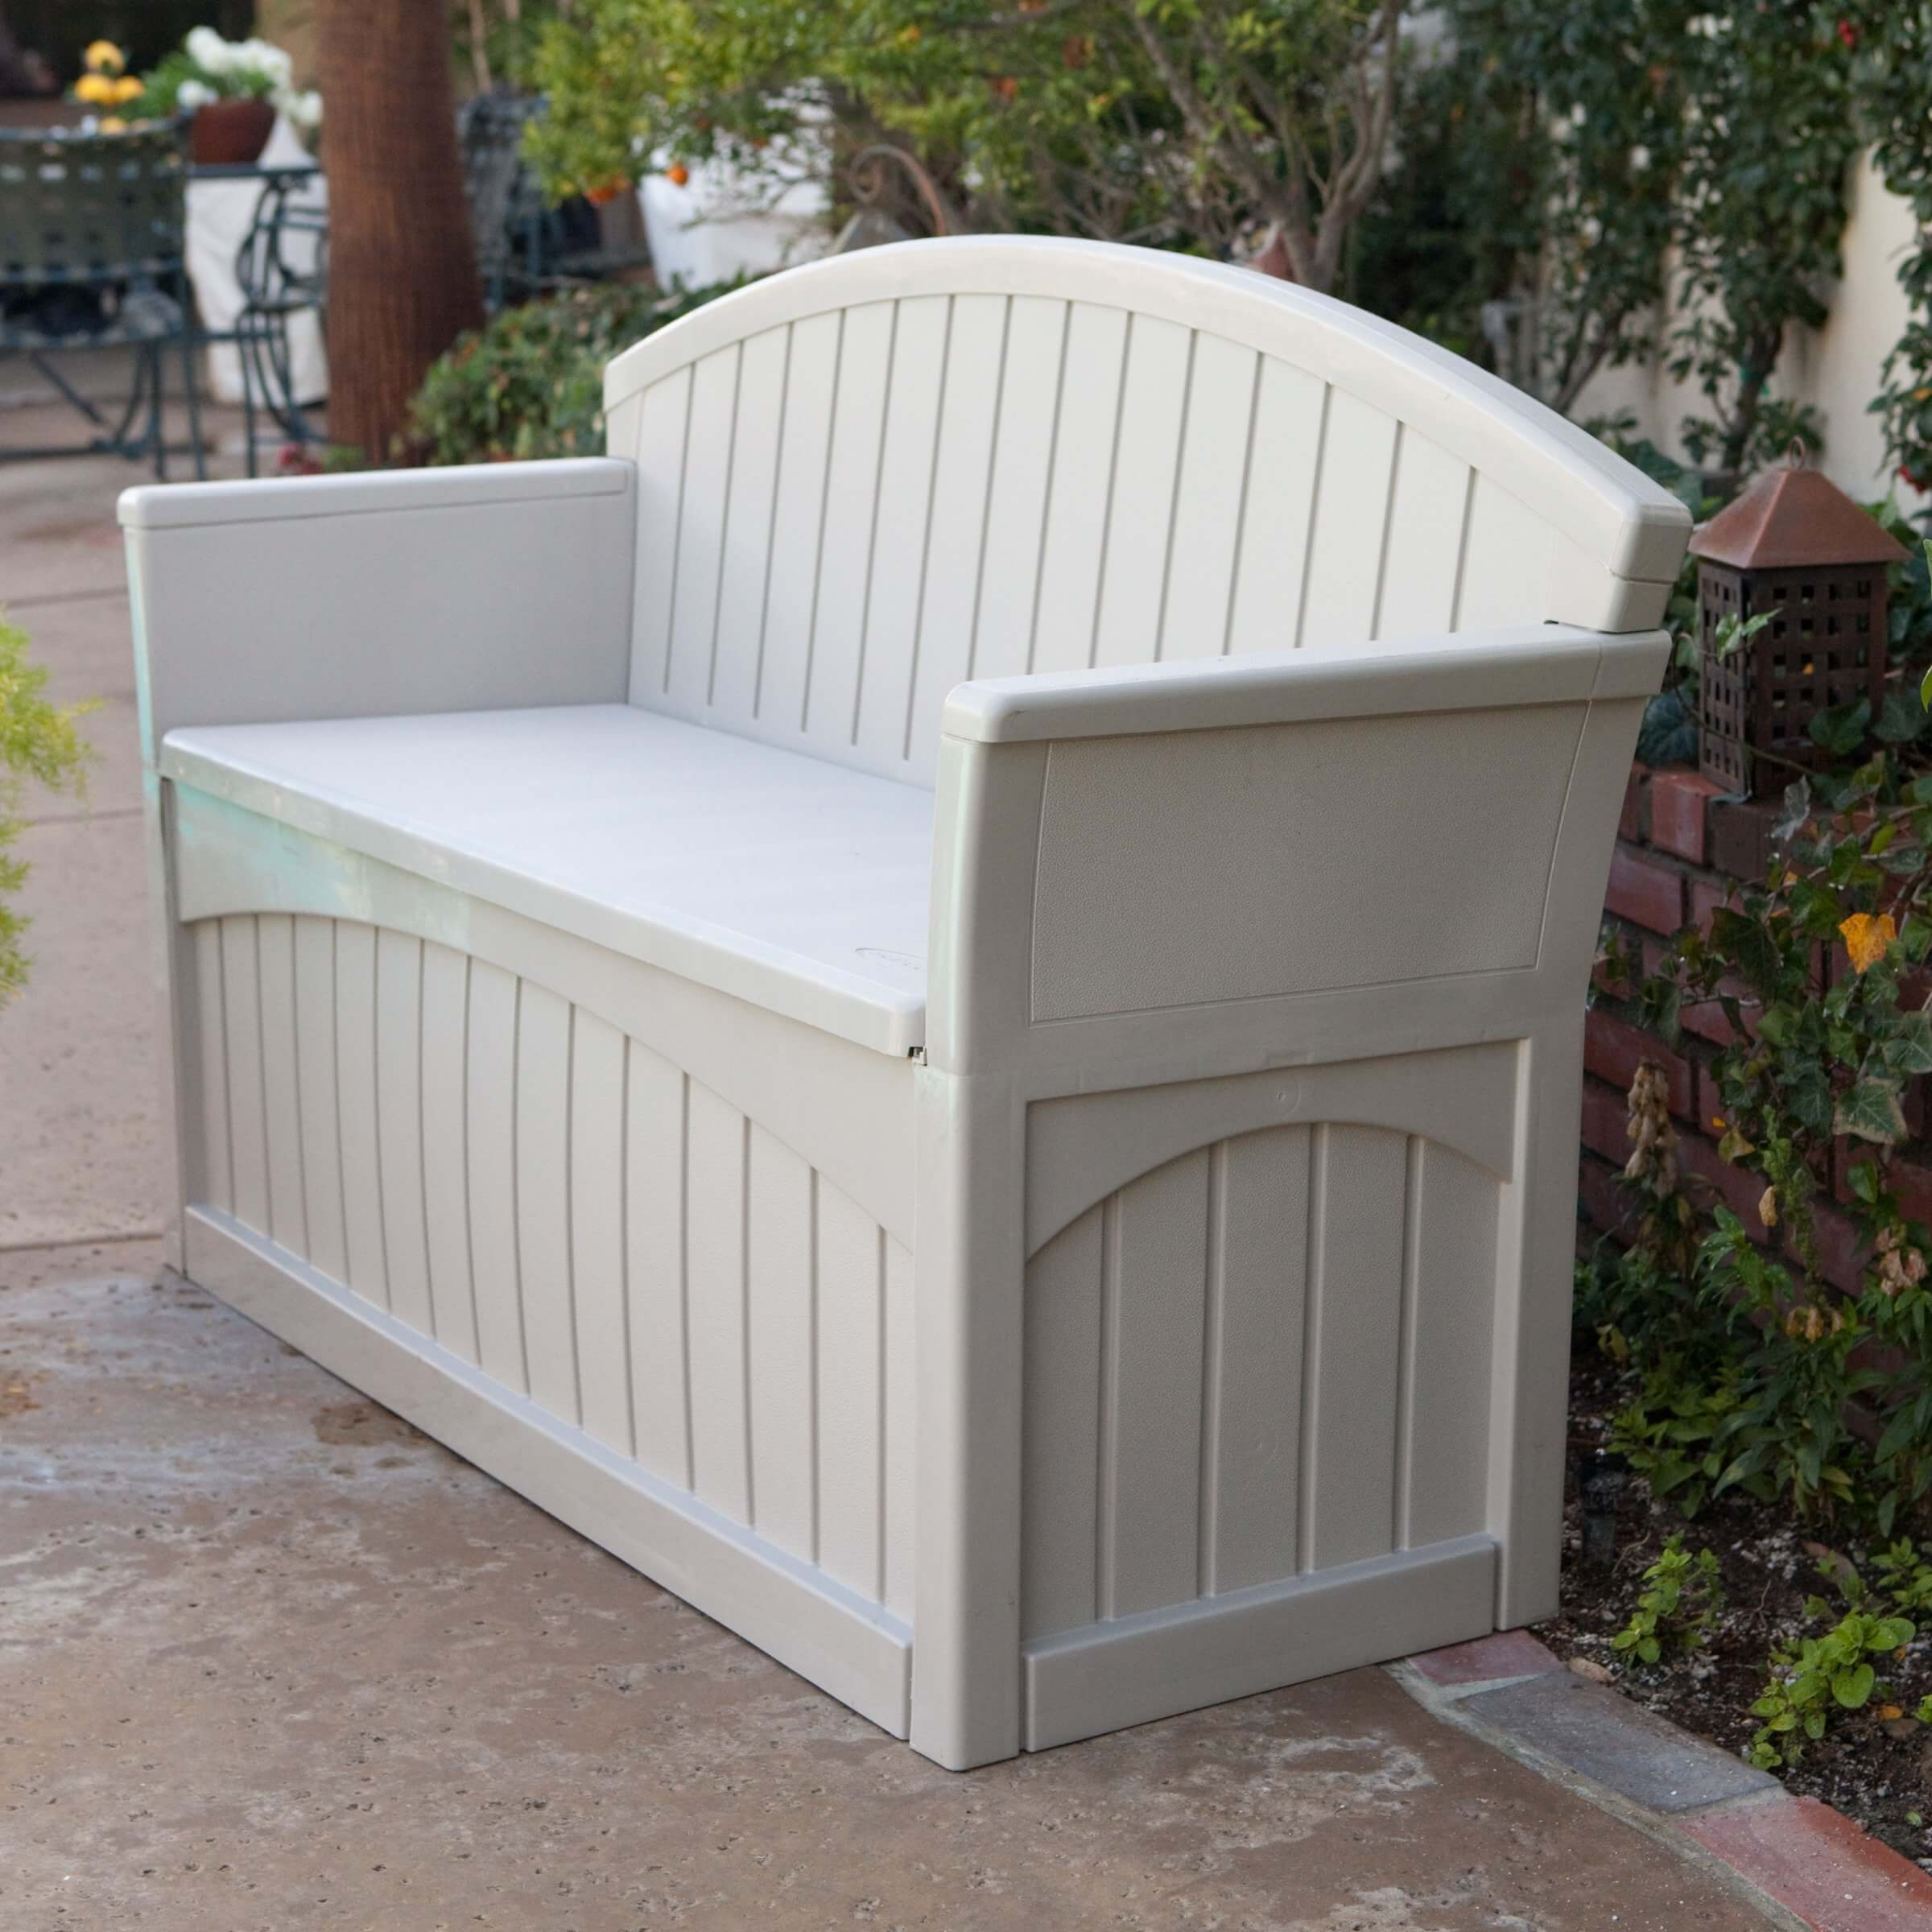 Store seat cushions, towels, outdoor décor or garden accessories in the under seat storage of this attractive storage bench.